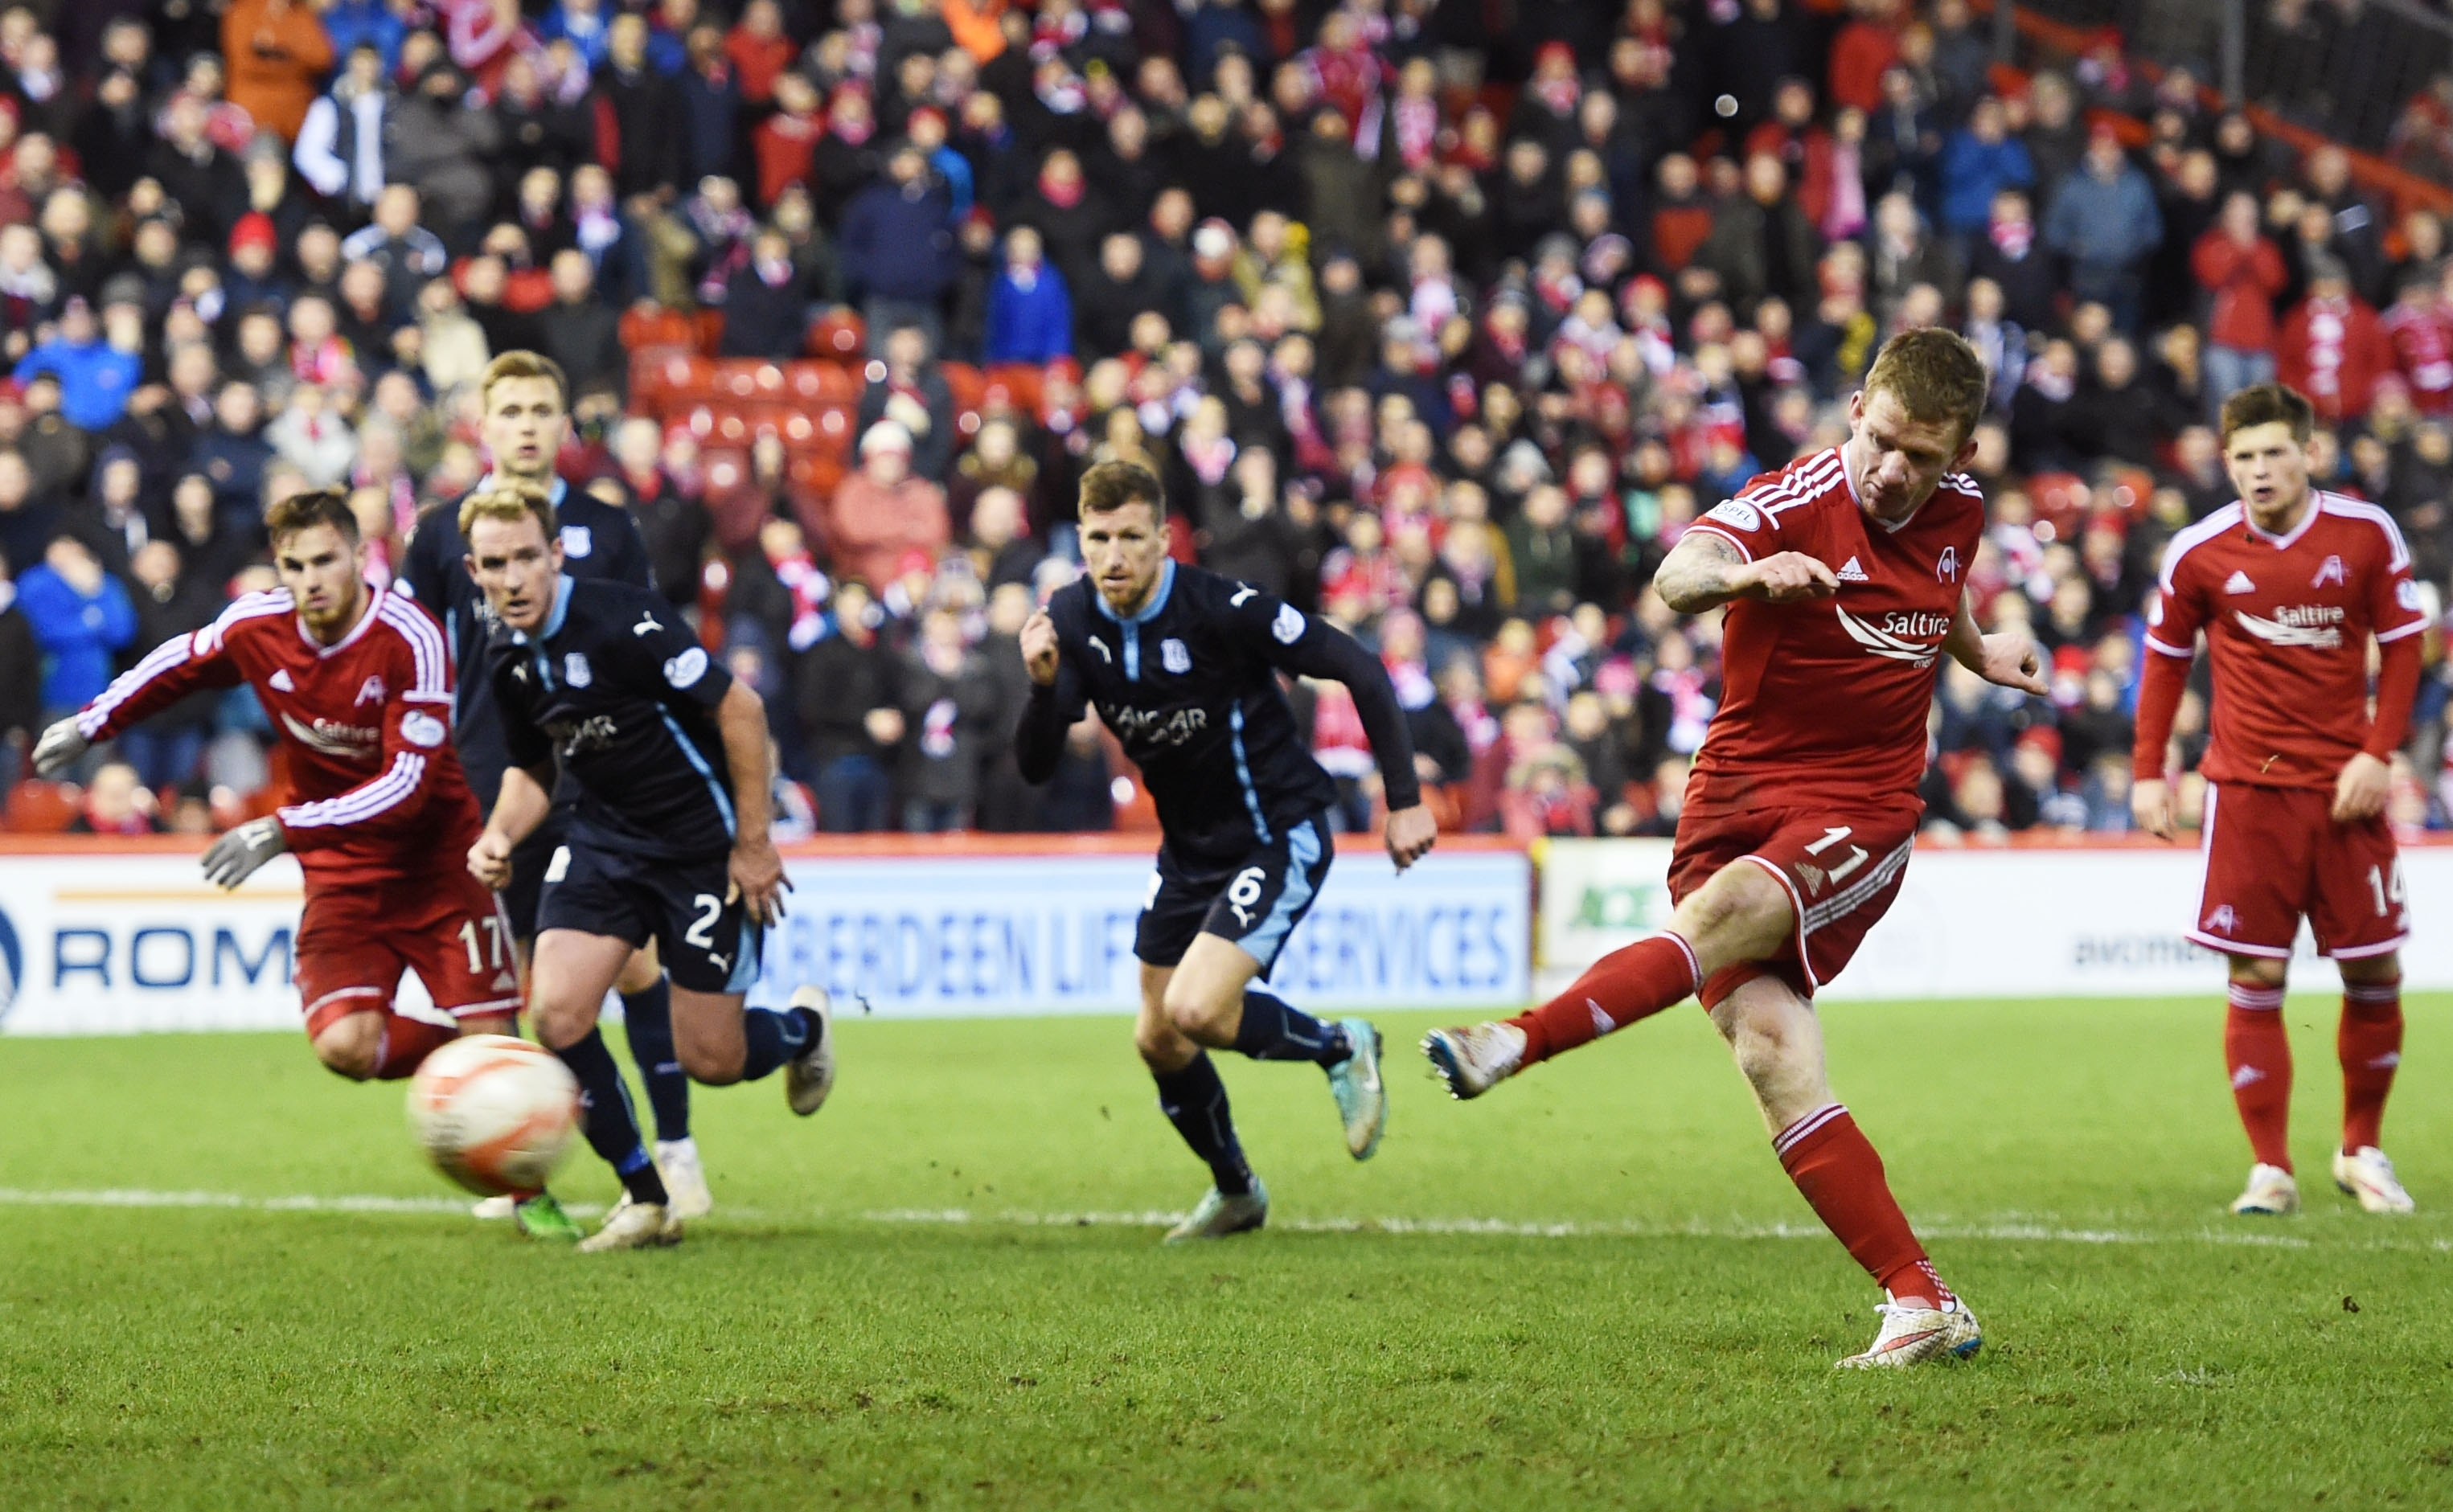 Jonny Hayes fired home from the penalty spot to bring the scores back to 3-2 before Ryan Jack's dramatic equaliser